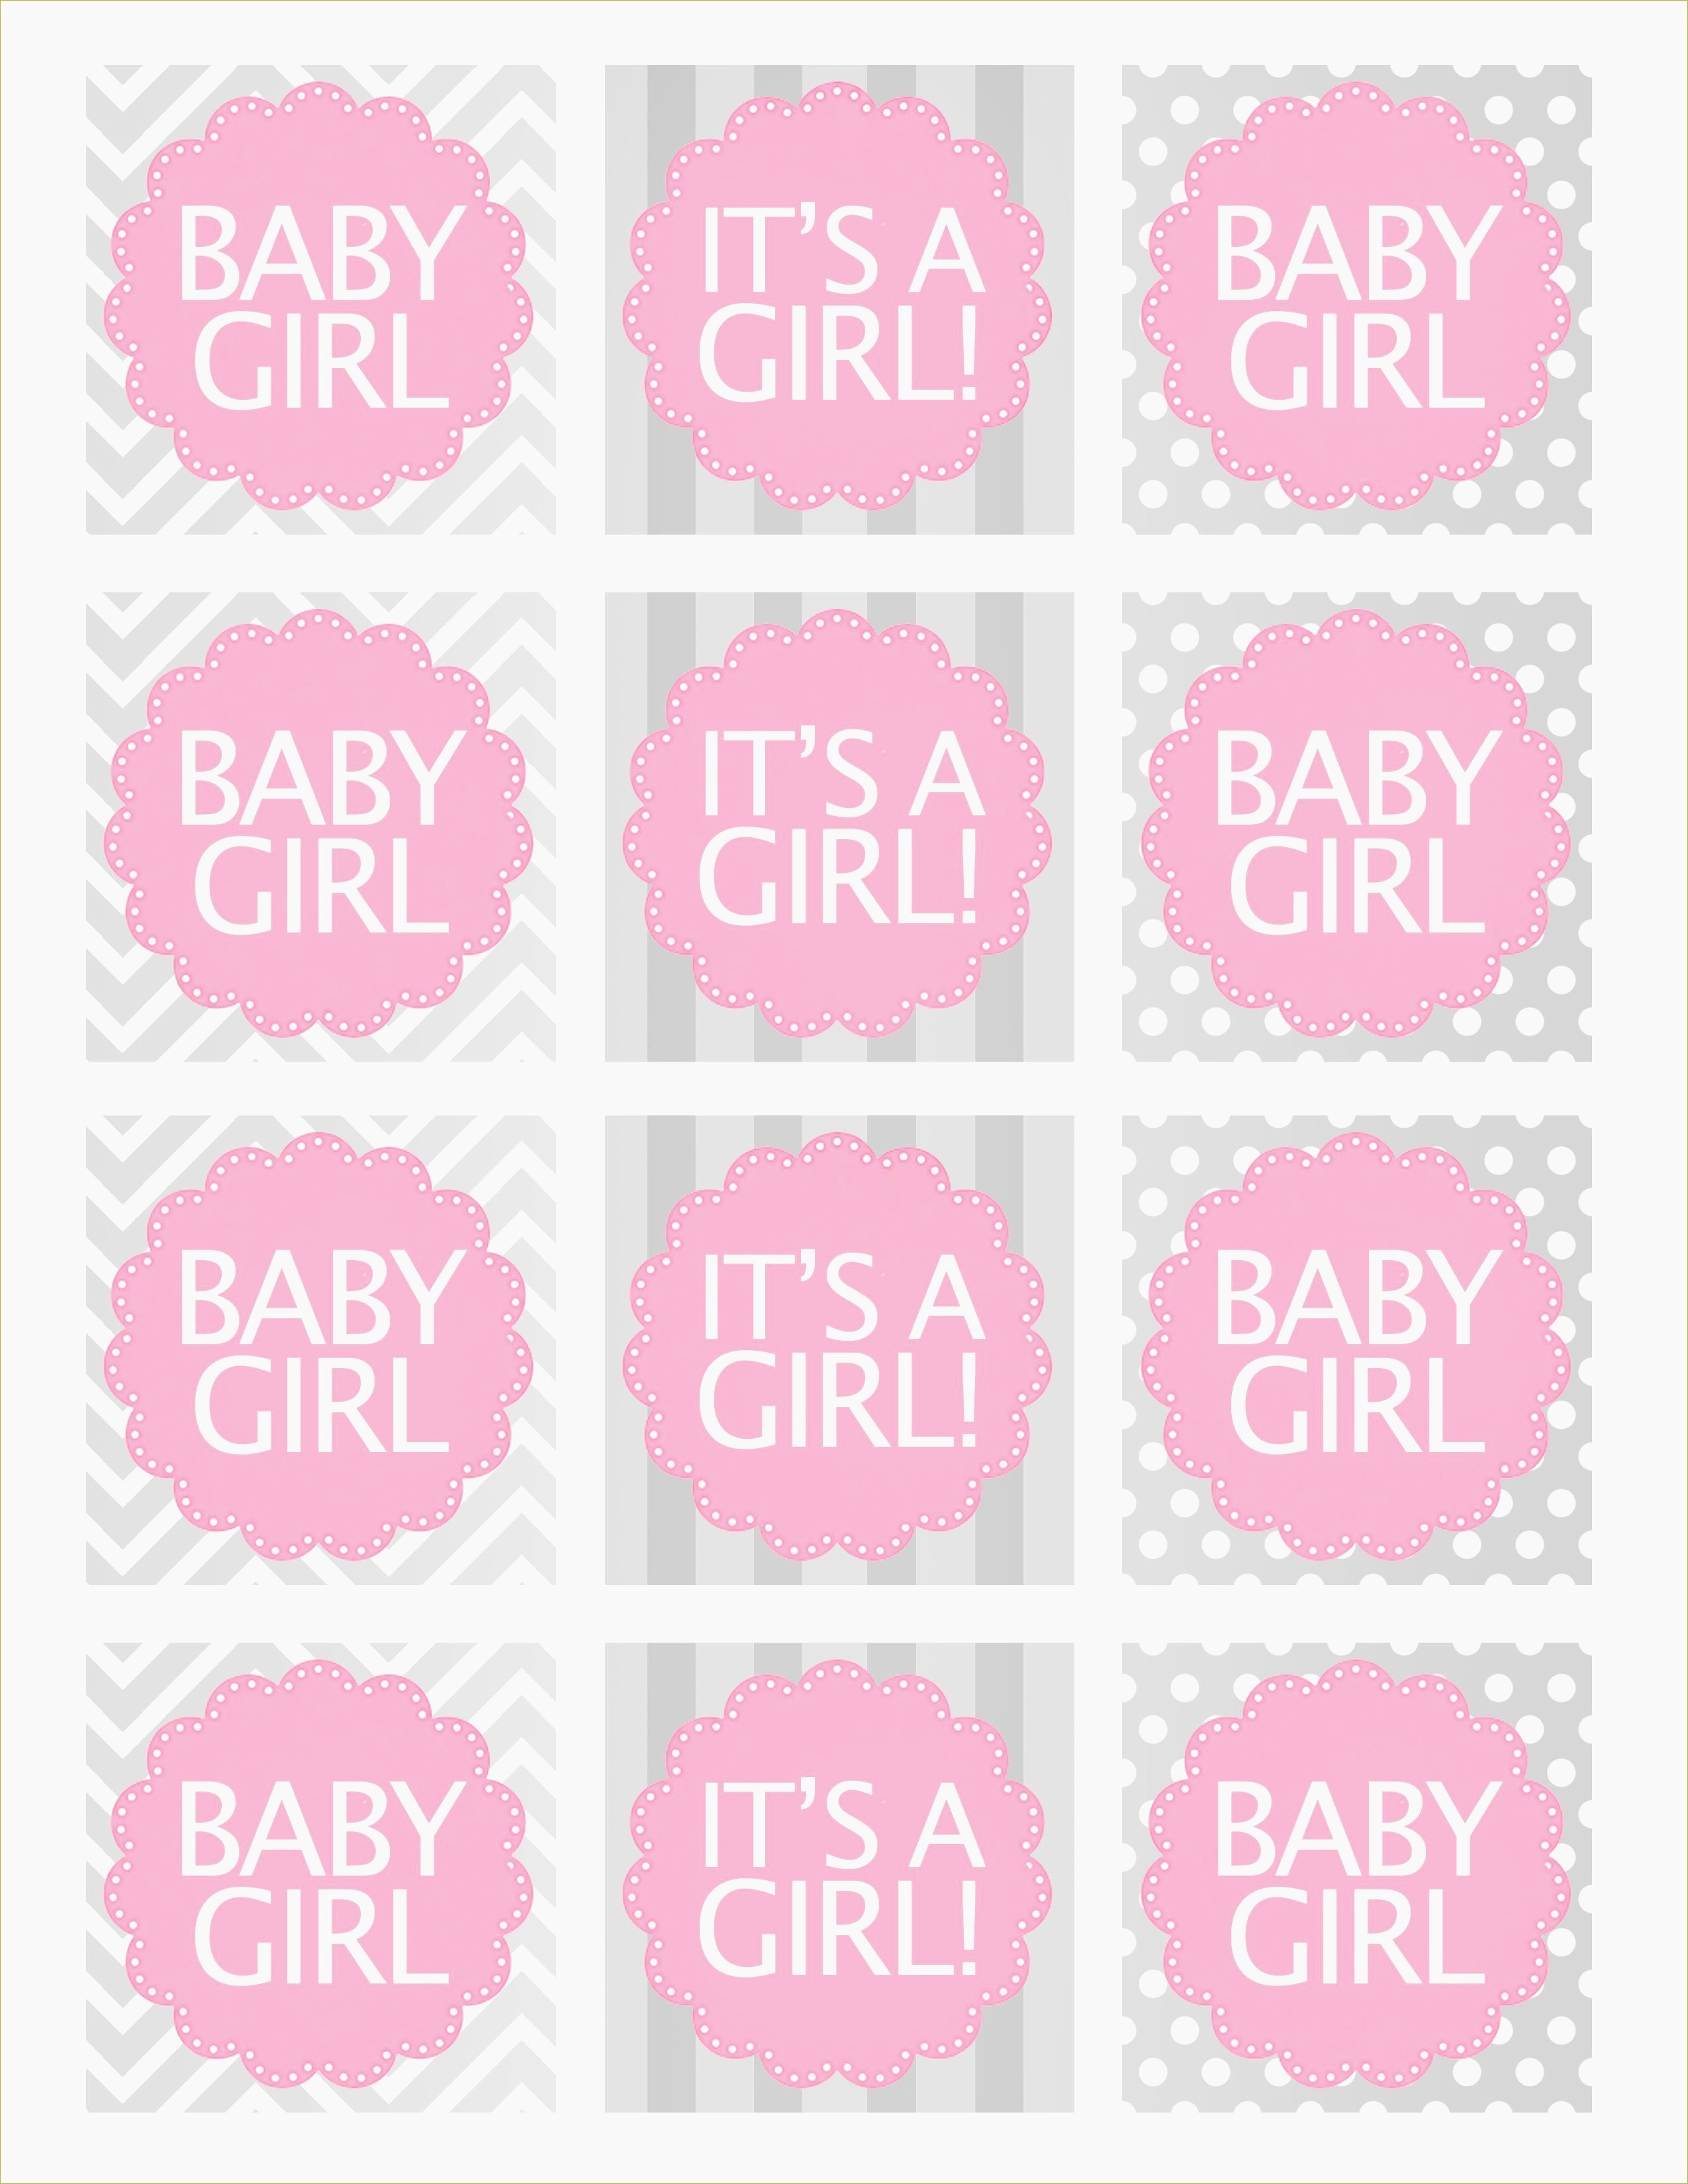 Inspirational Elephant Baby Shower Templates | Www.pantry-Magic - Free Printable Baby Shower Favor Tags